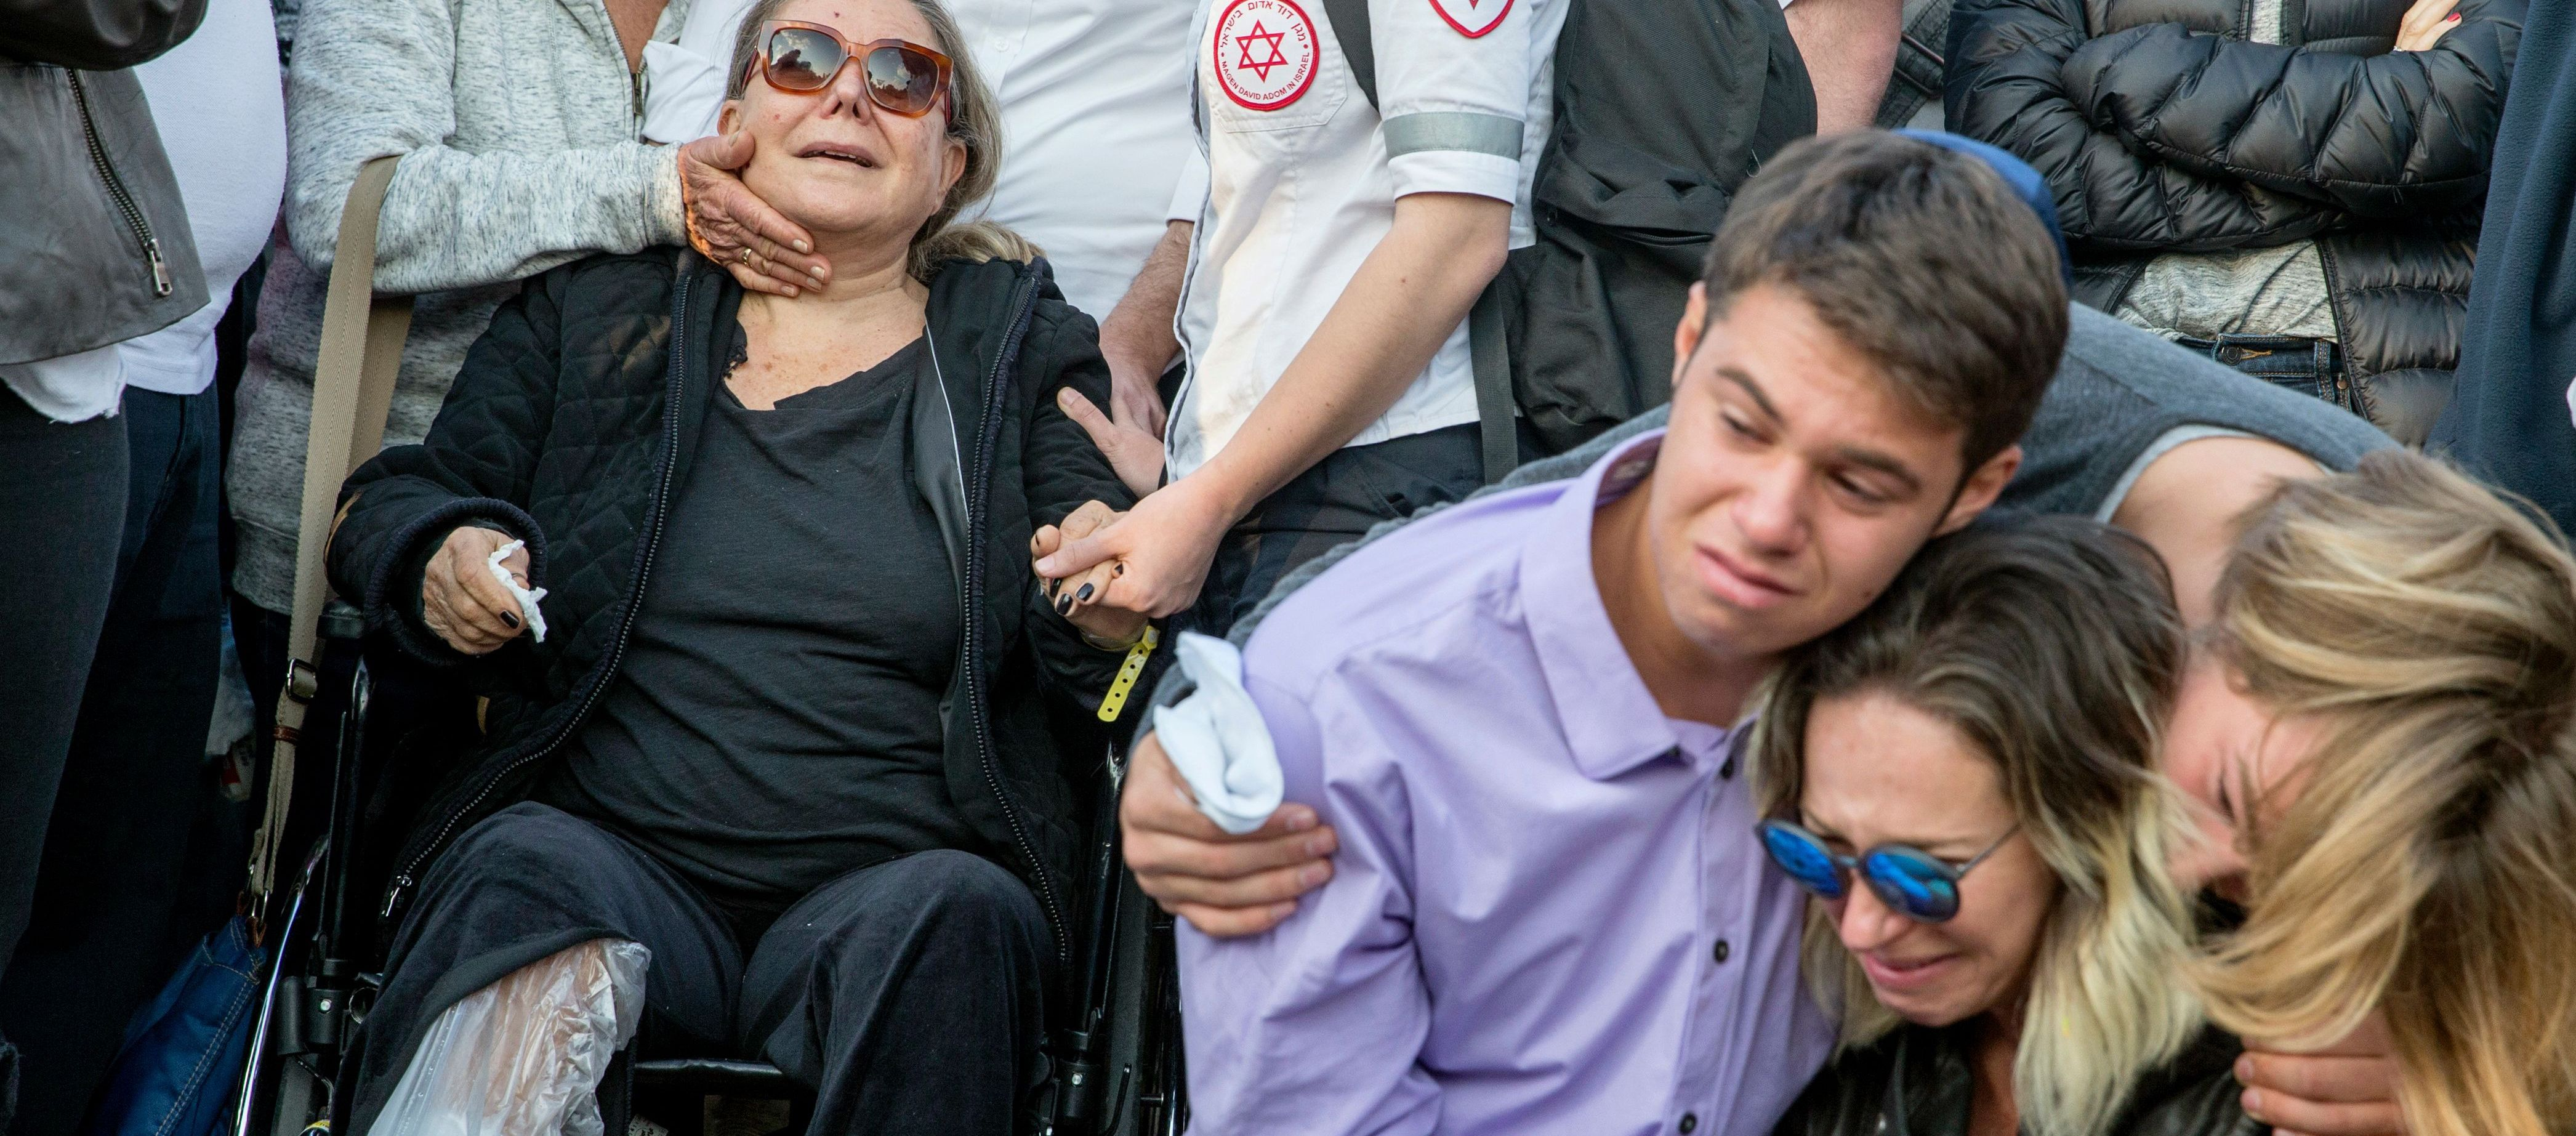 Nitza (L) the wife of Avraham Goldman, 69, who was killed in a suicide bombing in Istanbul on March 19, 2016 mourns with their children at his funeral.